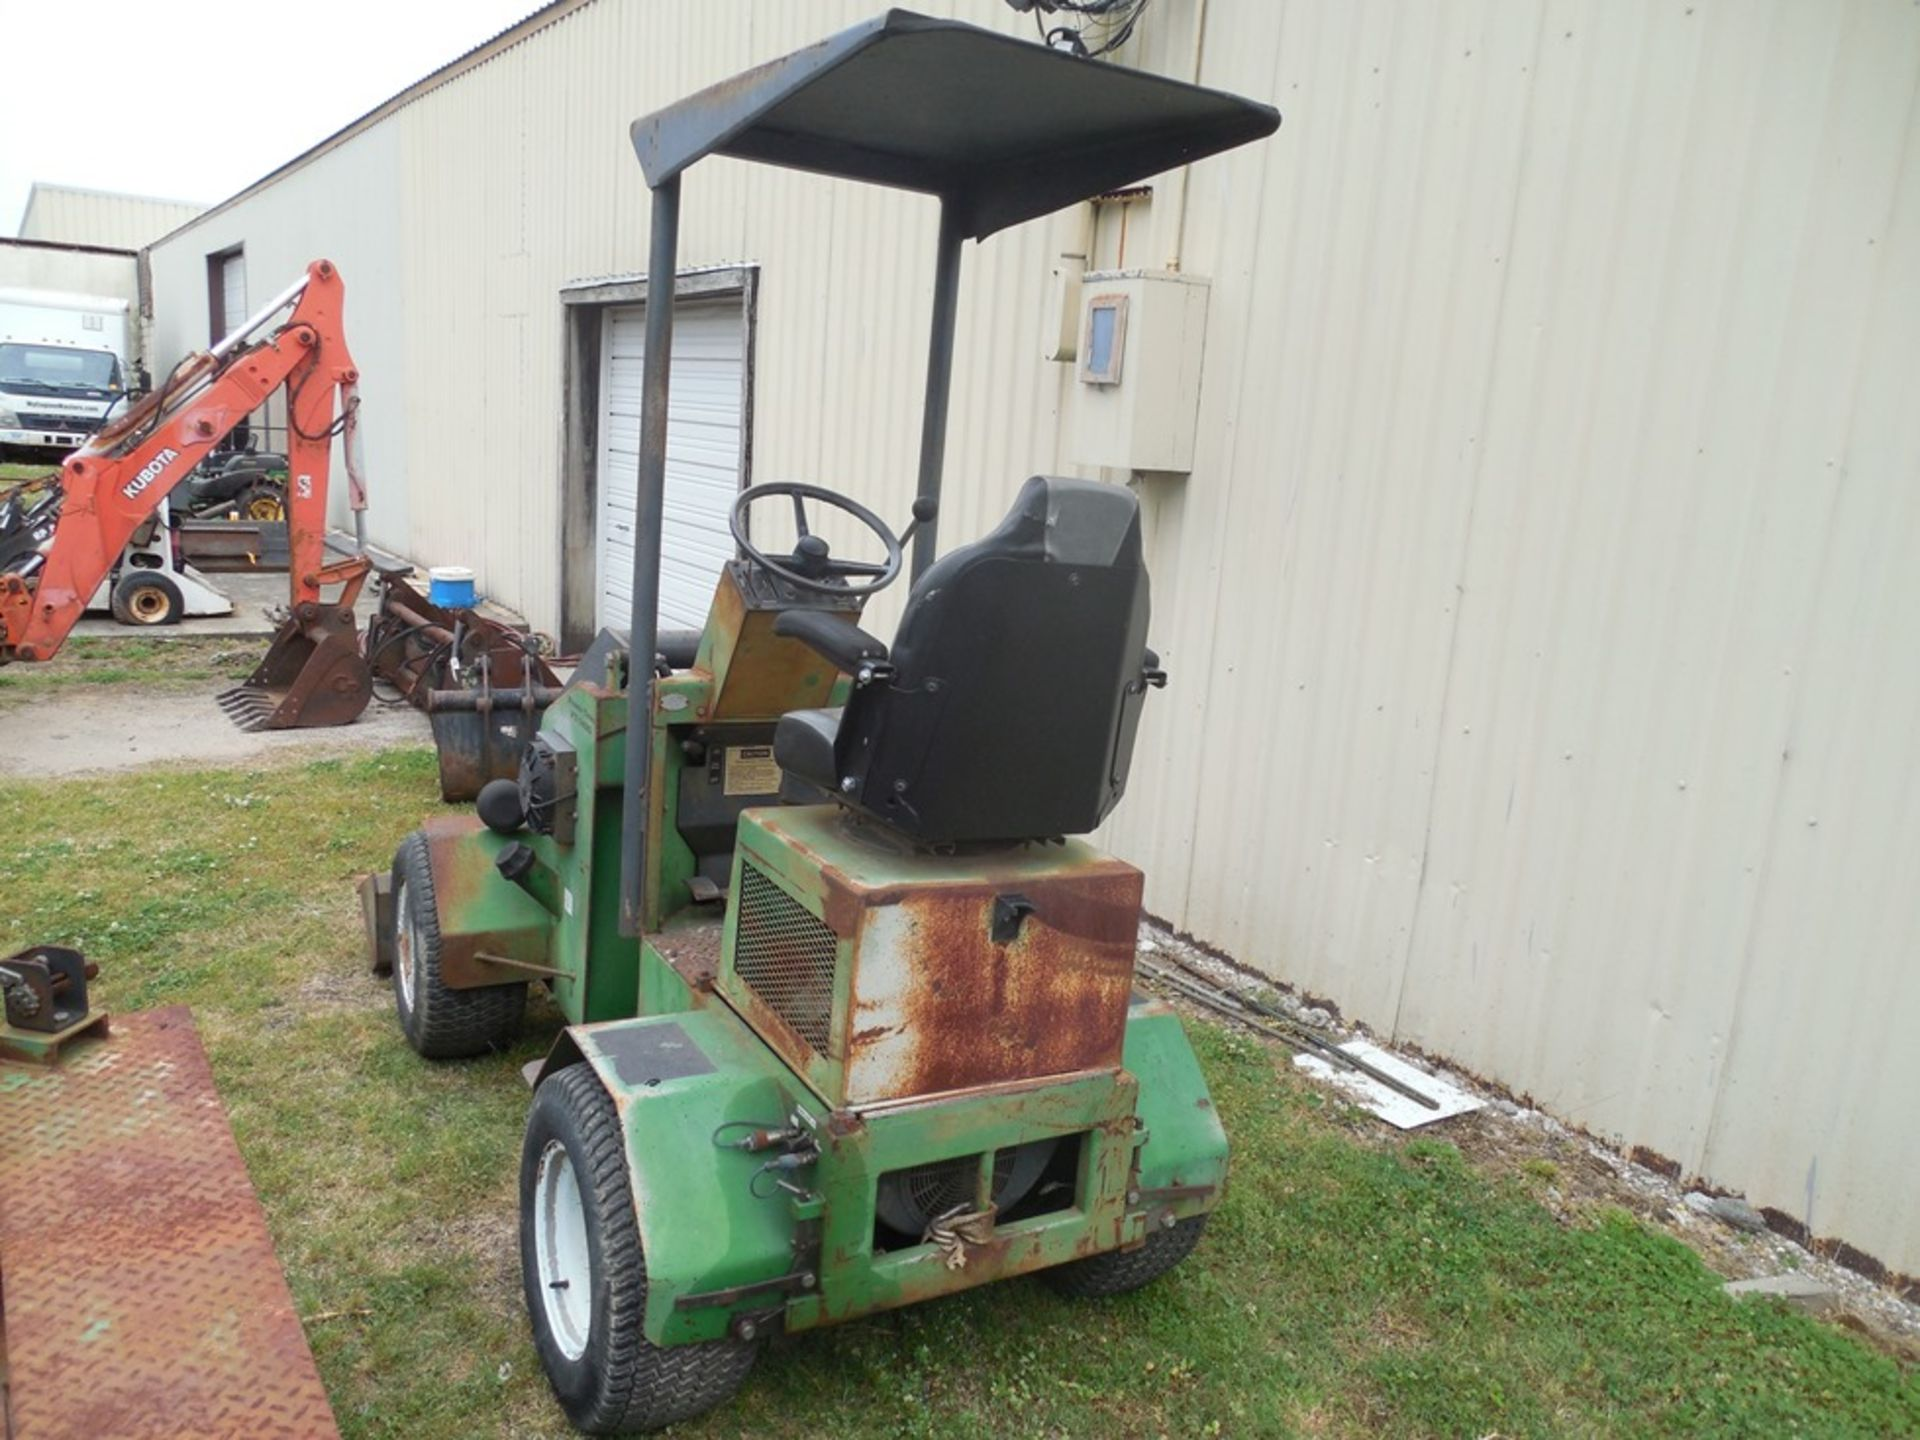 Power Trac PT-2425 Mini Skid Steer ser# 18928 with trailer, power rake, tree spade, front bucket, - Image 5 of 13